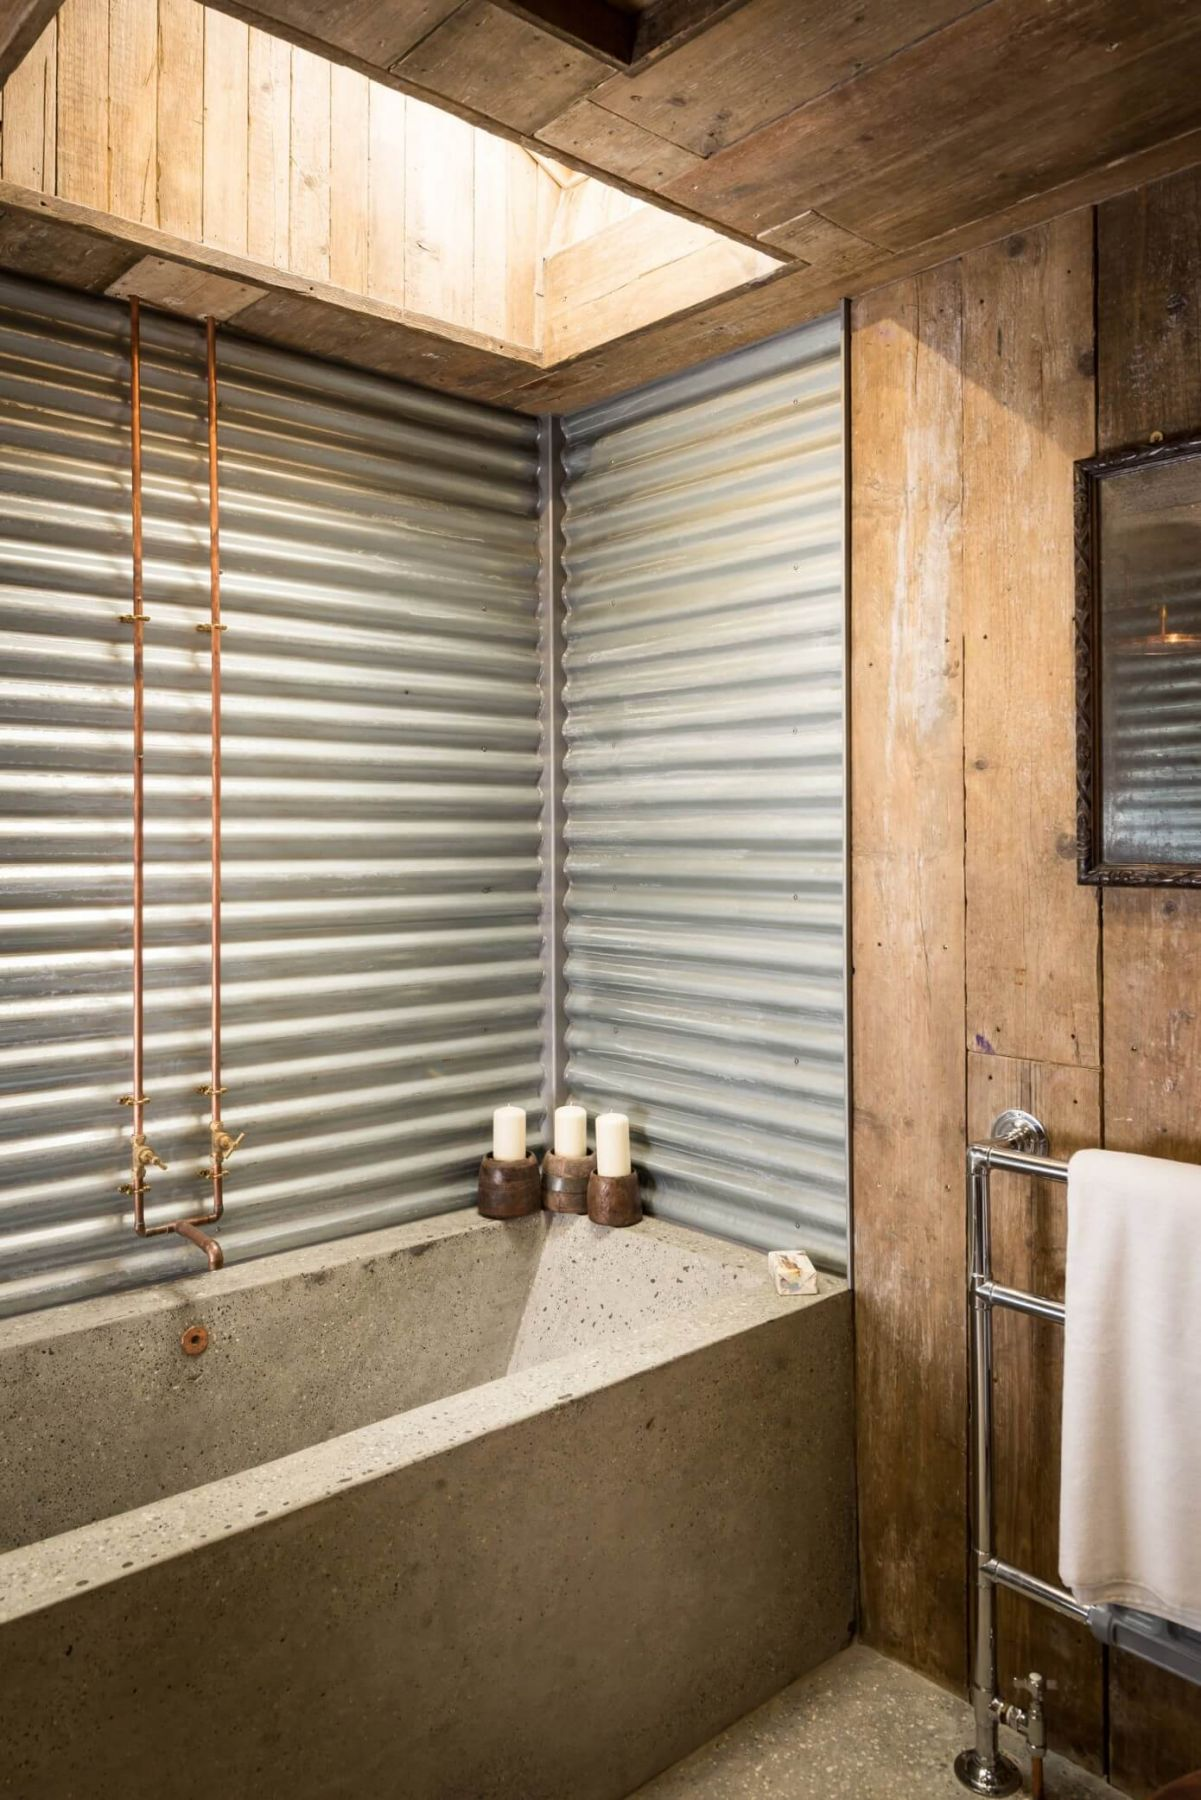 A beautiful wooden cottage in North Cornwall. wooden rustic bathroom and concrete bathtube